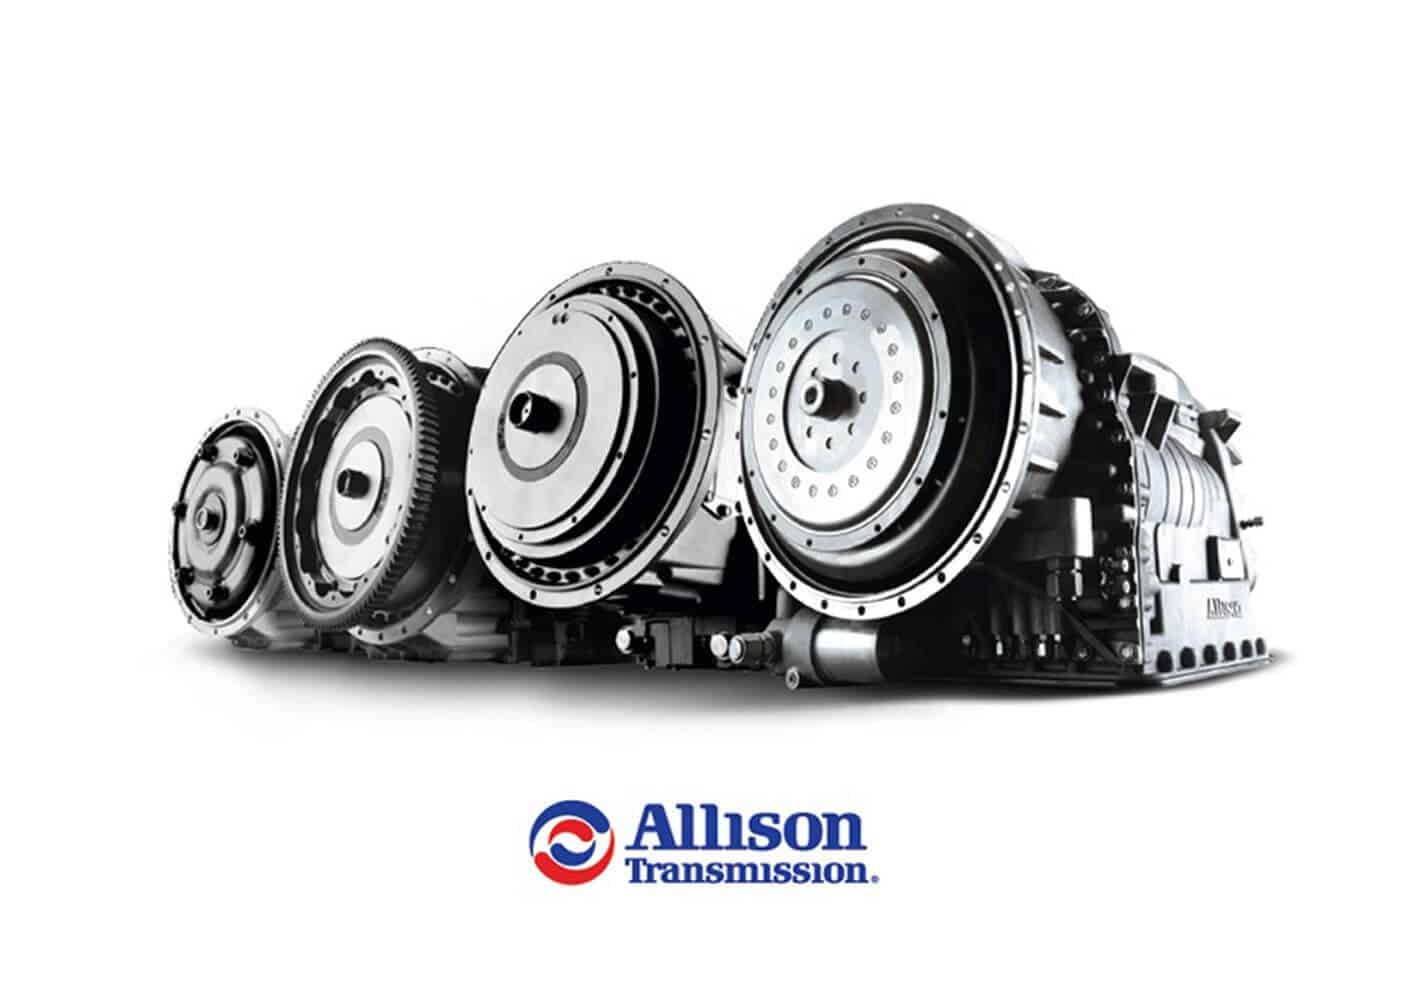 allison gearboxes